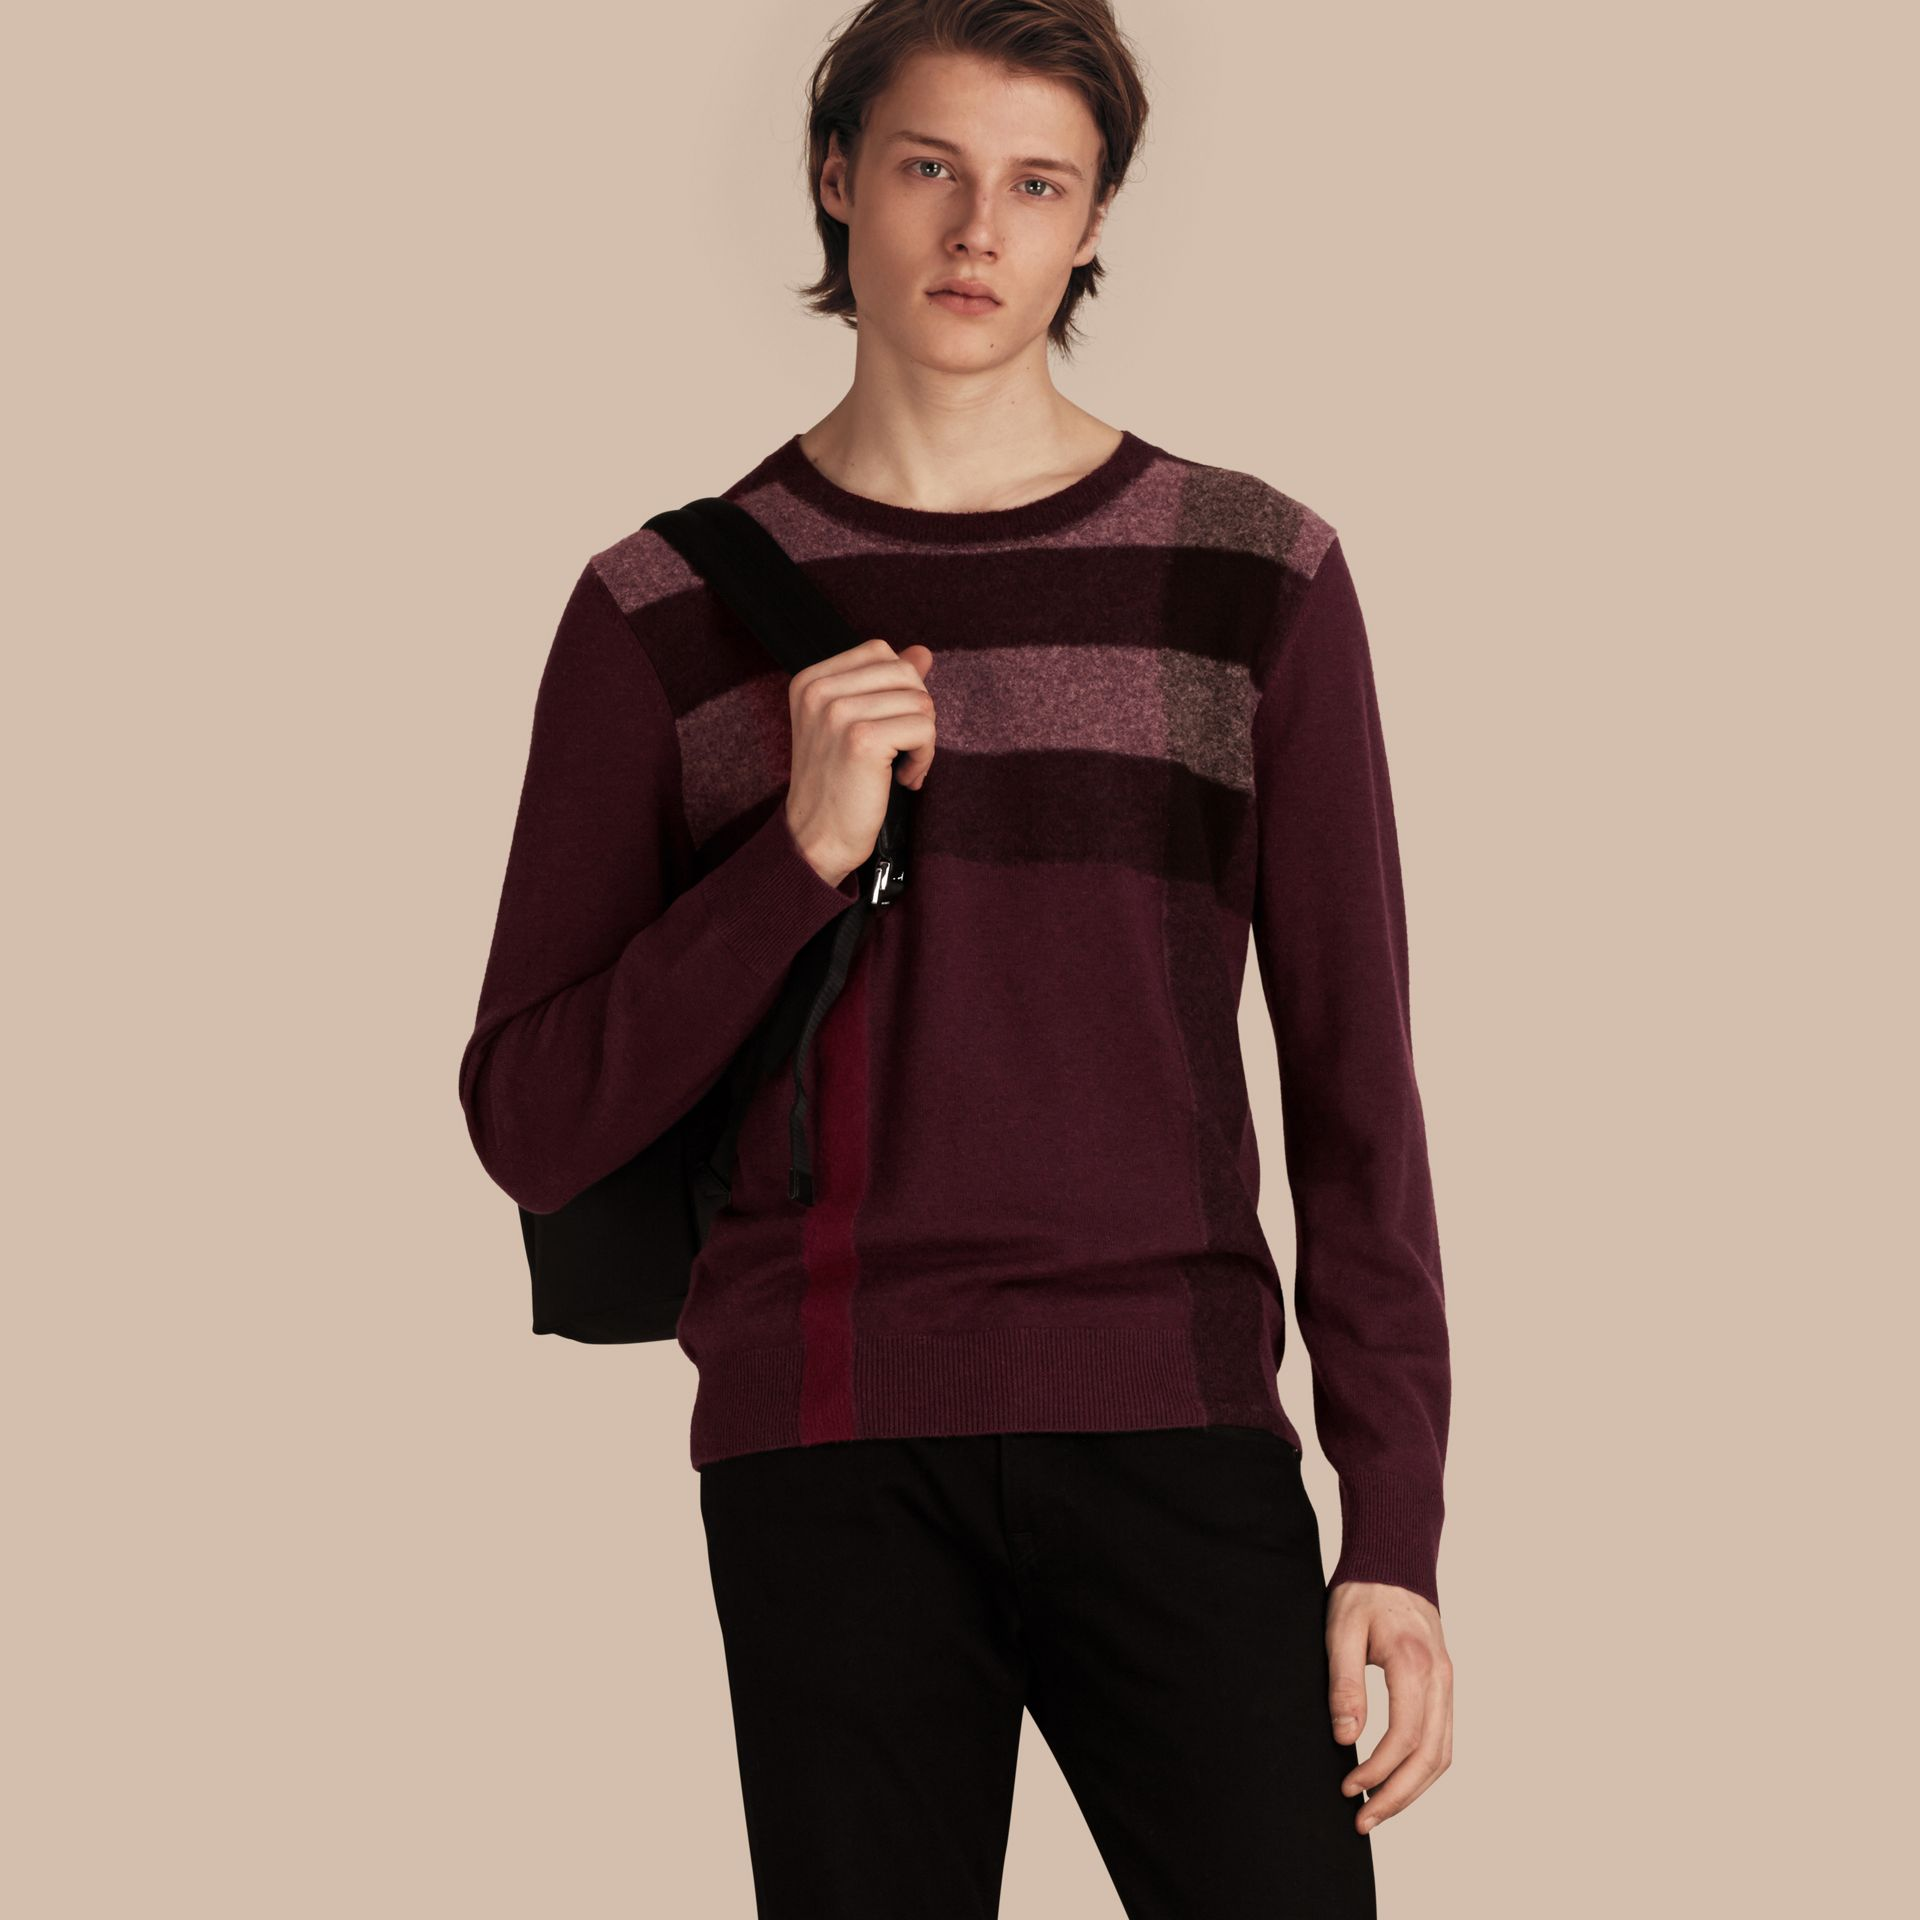 Burgundy red Graphic Check Cashmere Cotton Sweater Burgundy Red - gallery image 1